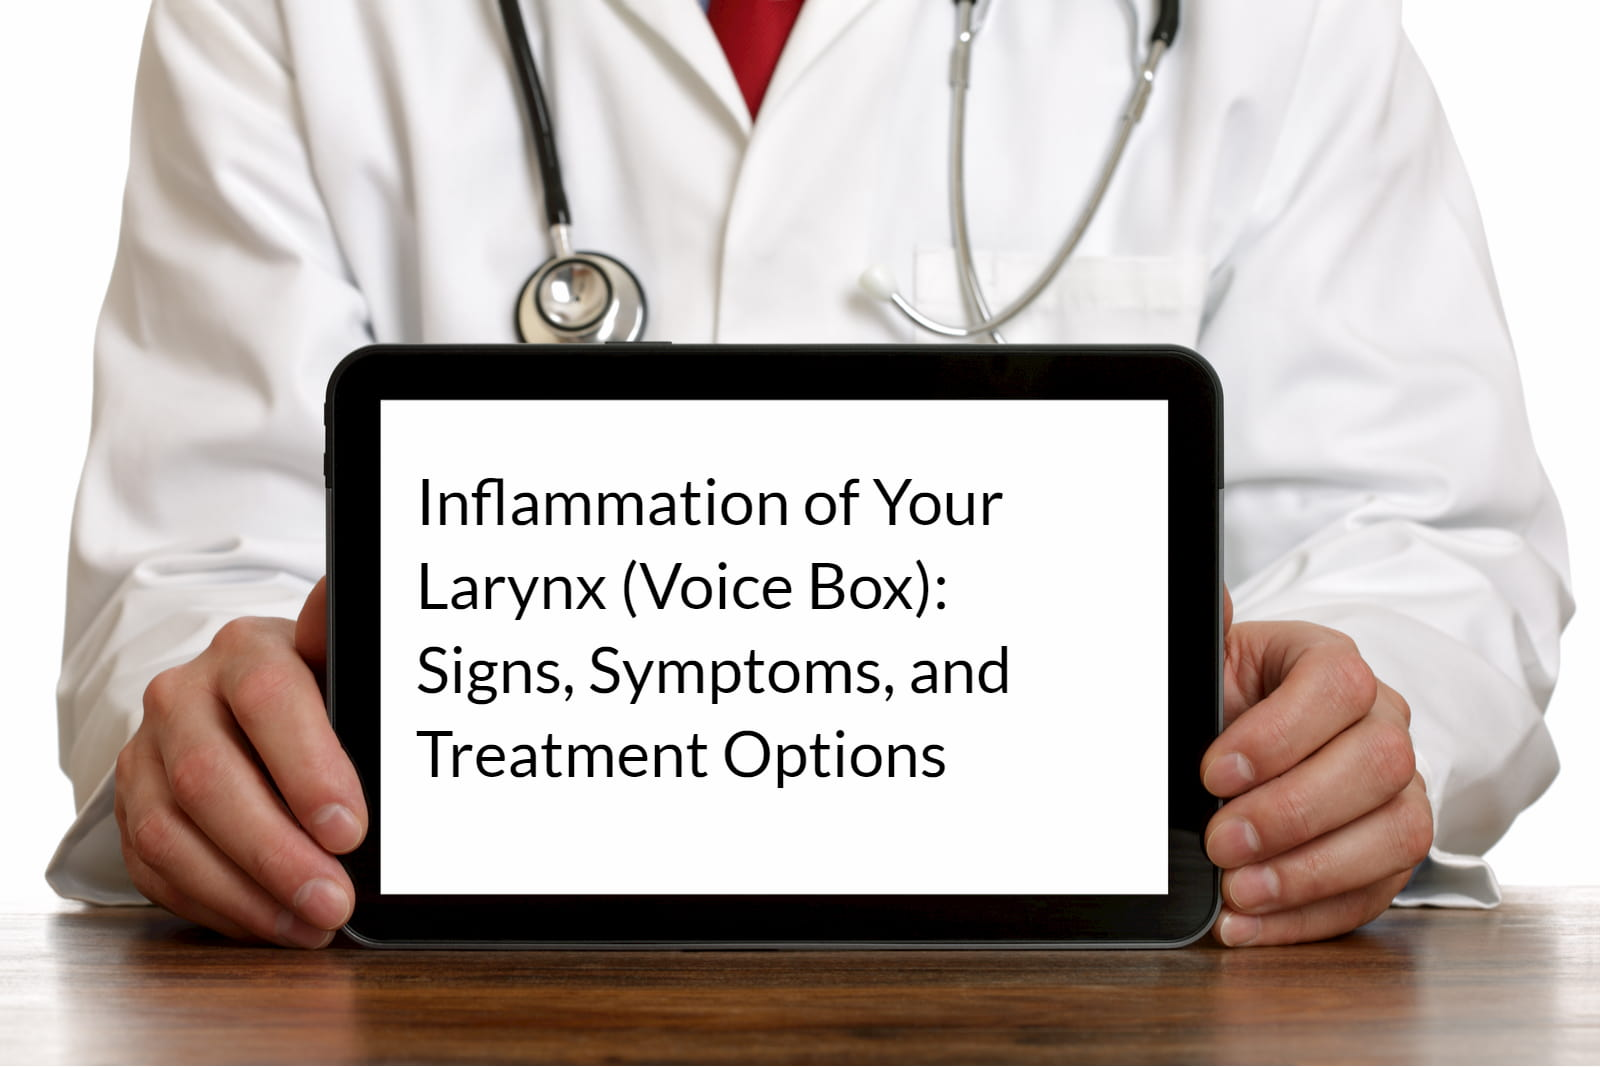 Inflammation of Your Larynx (Voice Box): Signs, Symptoms, and Treatment Options